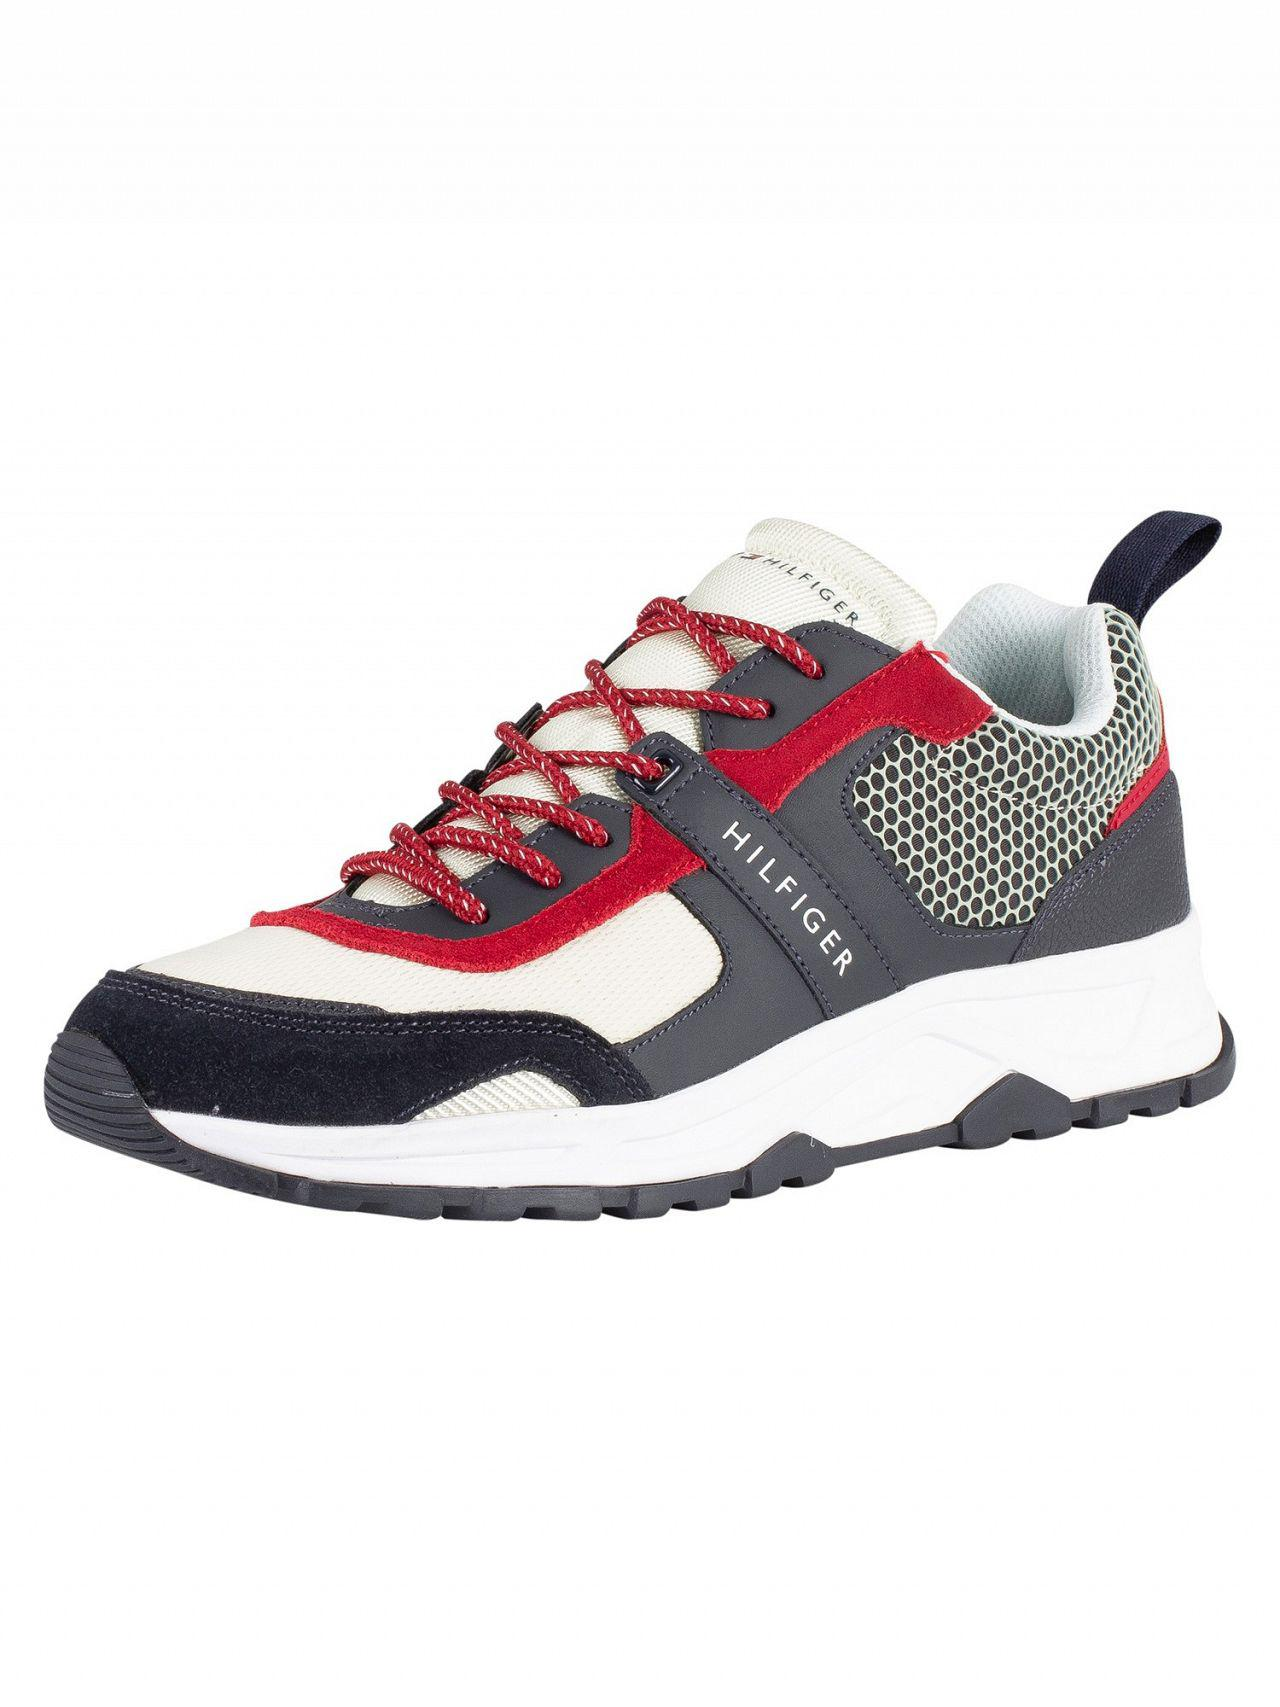 037fbd317 Tommy Hilfiger Black beige Material Mix Lightweight Trainers in ...